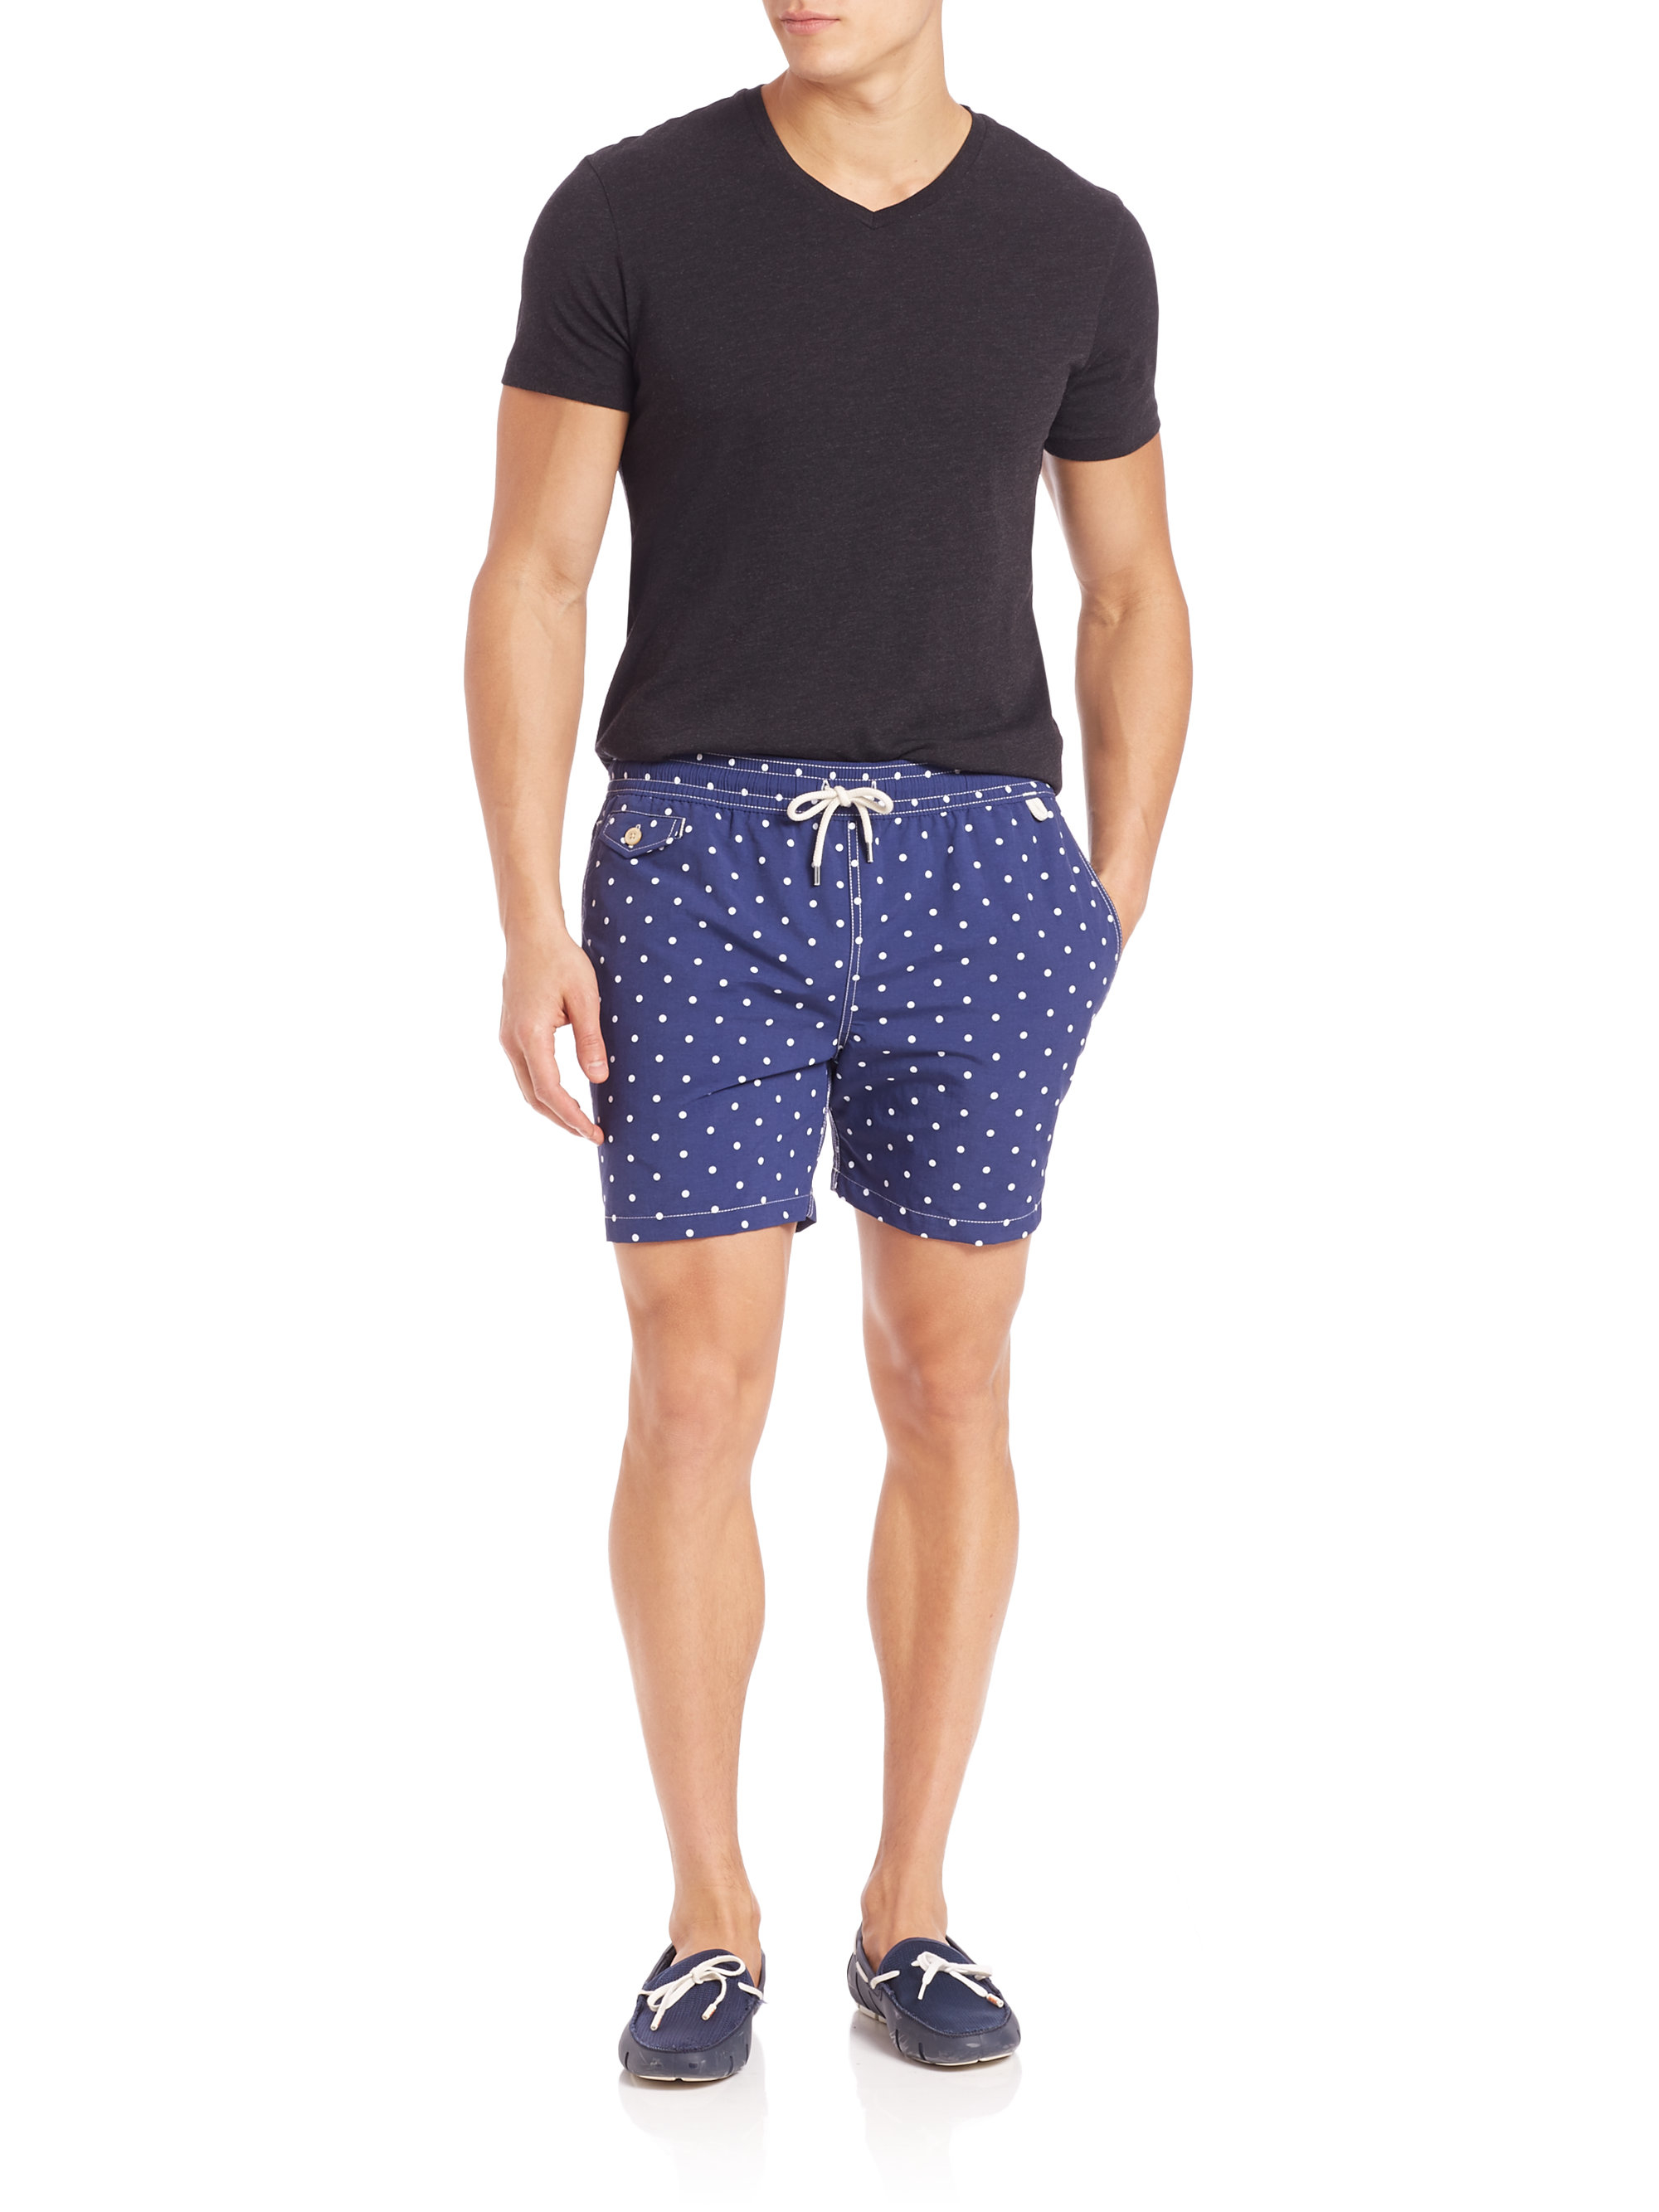 c77eac8f43 ... italy lyst polo ralph lauren polka dot traveler swim shorts in blue for  men 60865 3ccb5